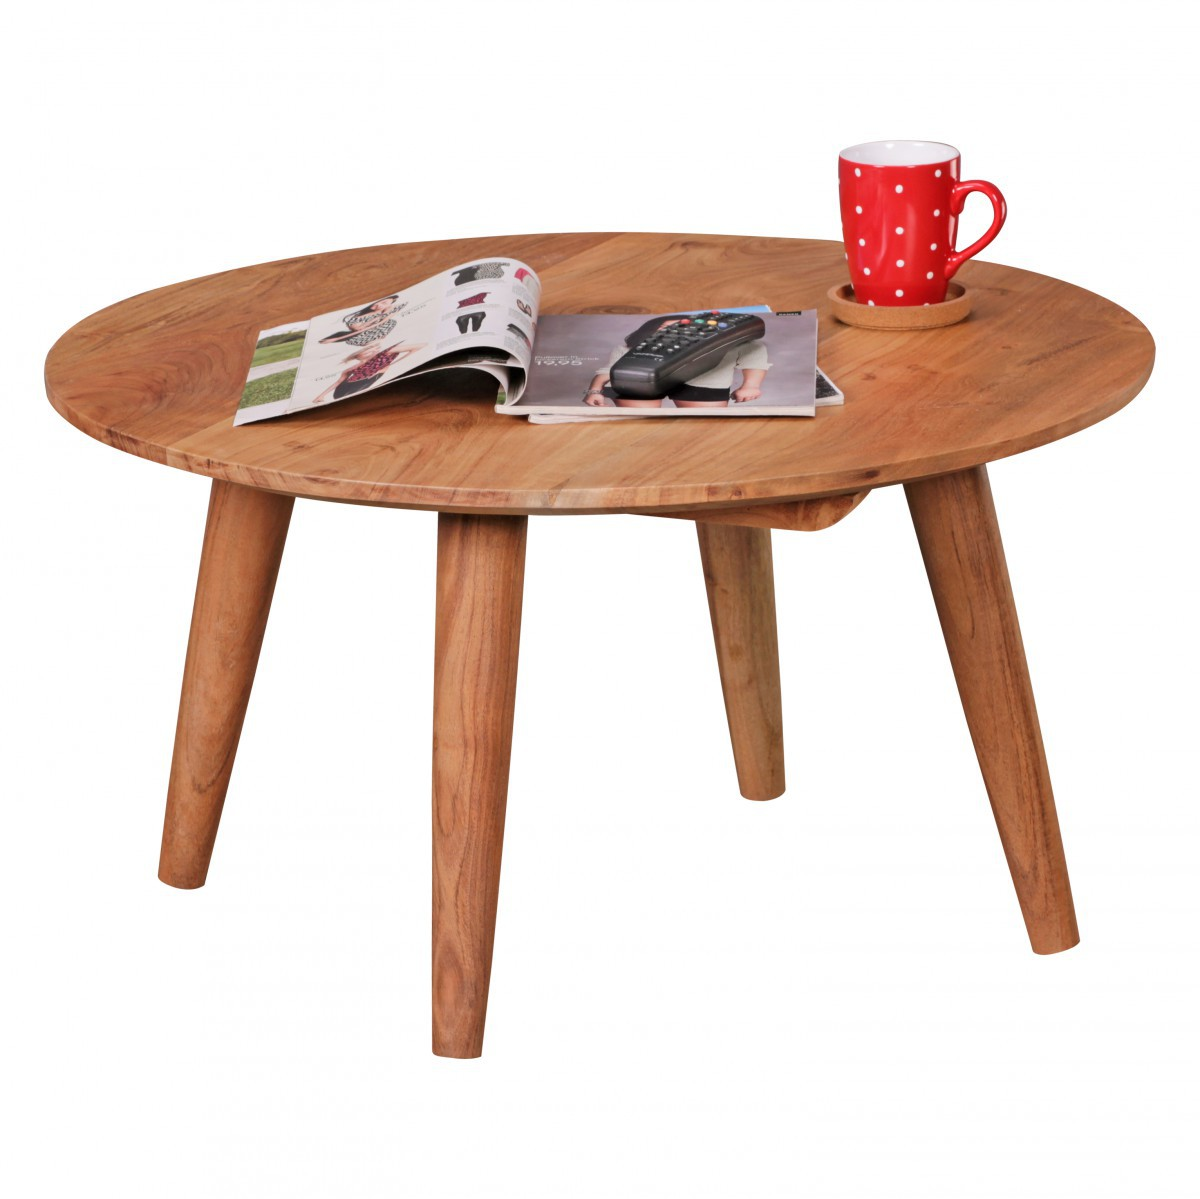 Finebuy table basse en bois massif acacia table basse - Table ronde pliante bois ...